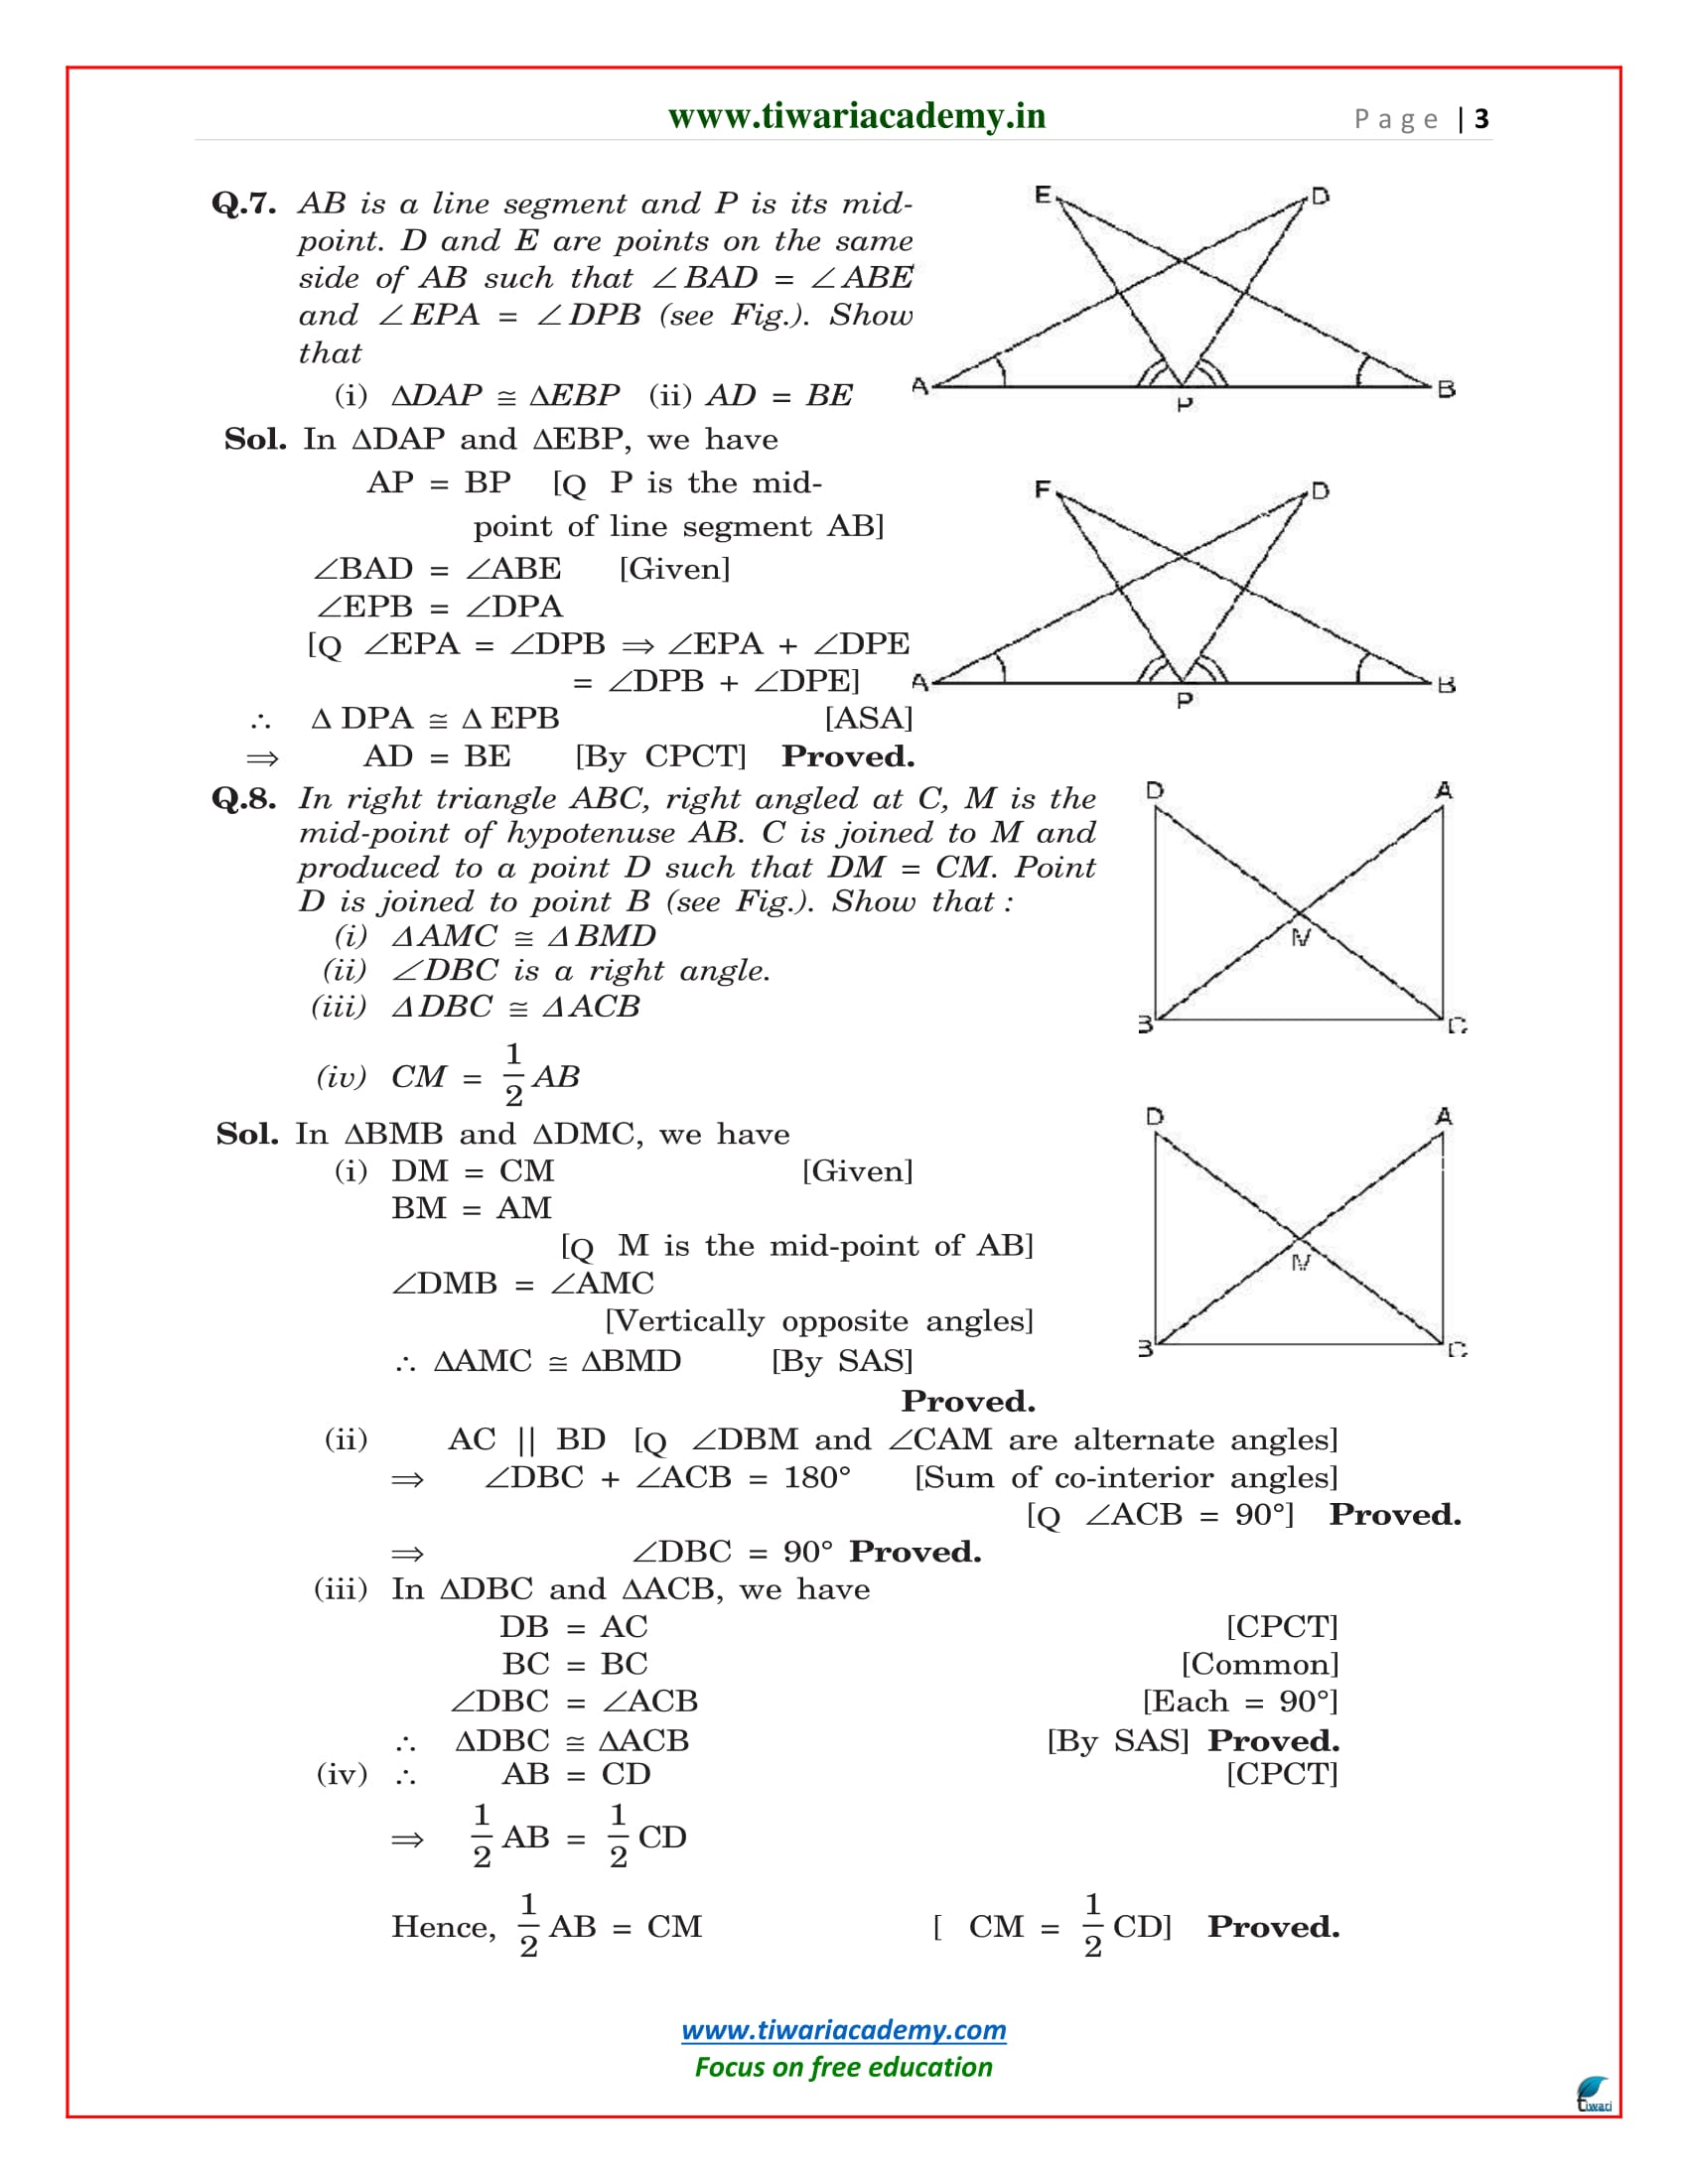 class 9 maths chapter 7 exercise 7.1 solutions